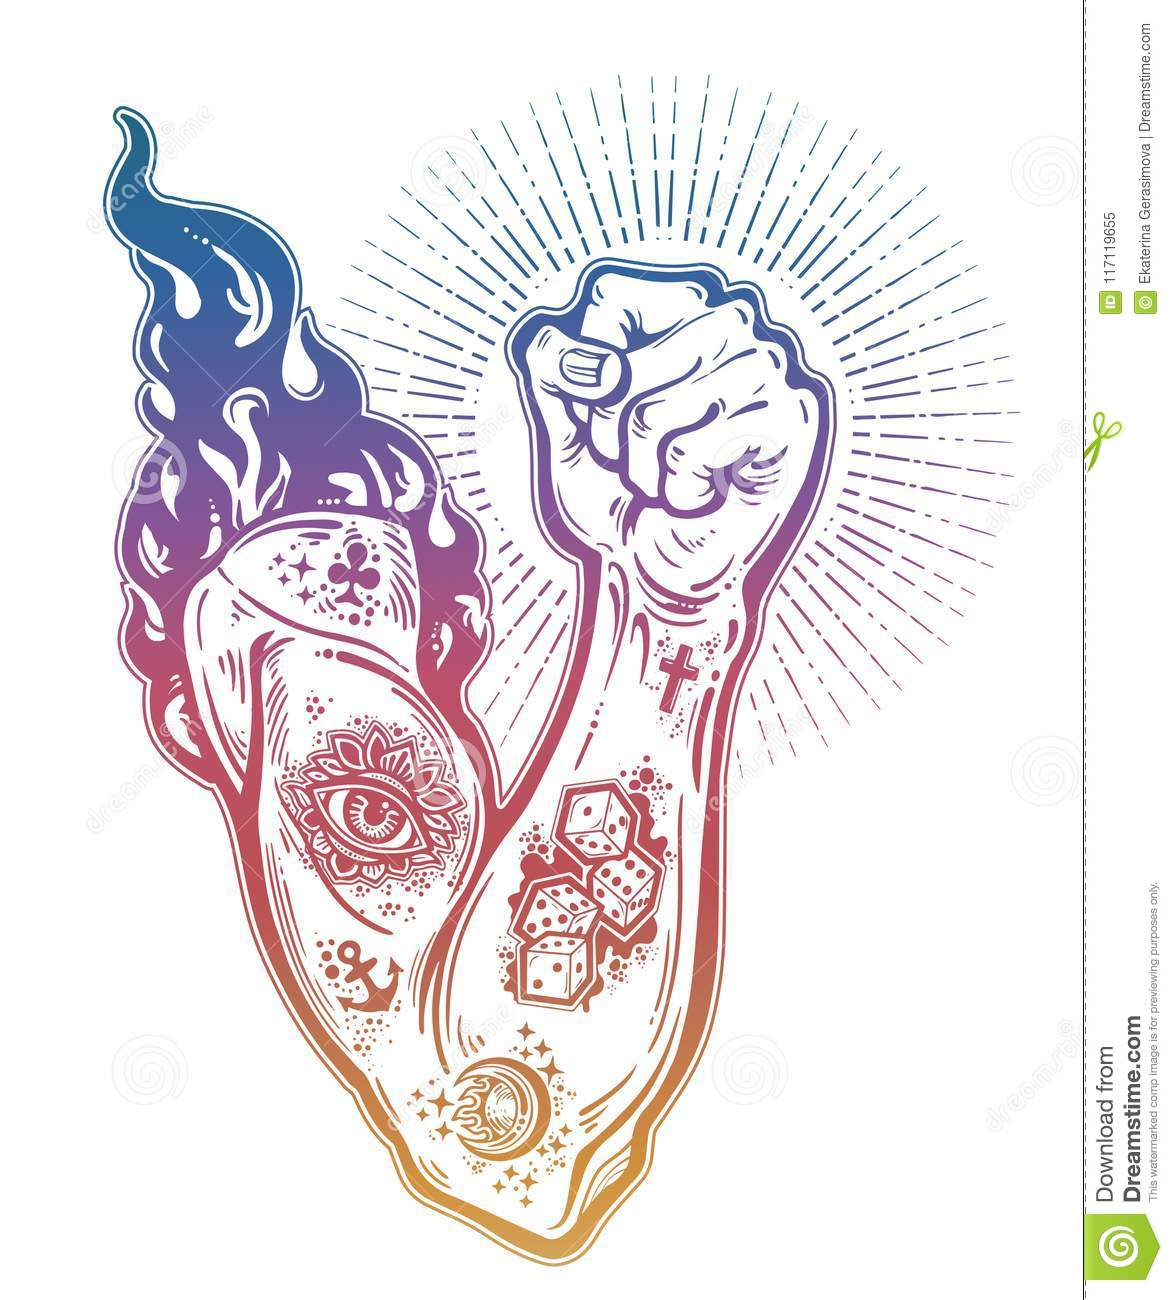 Raised Inked Hand As A Fist Gesture With Fire Burning In Flash ...